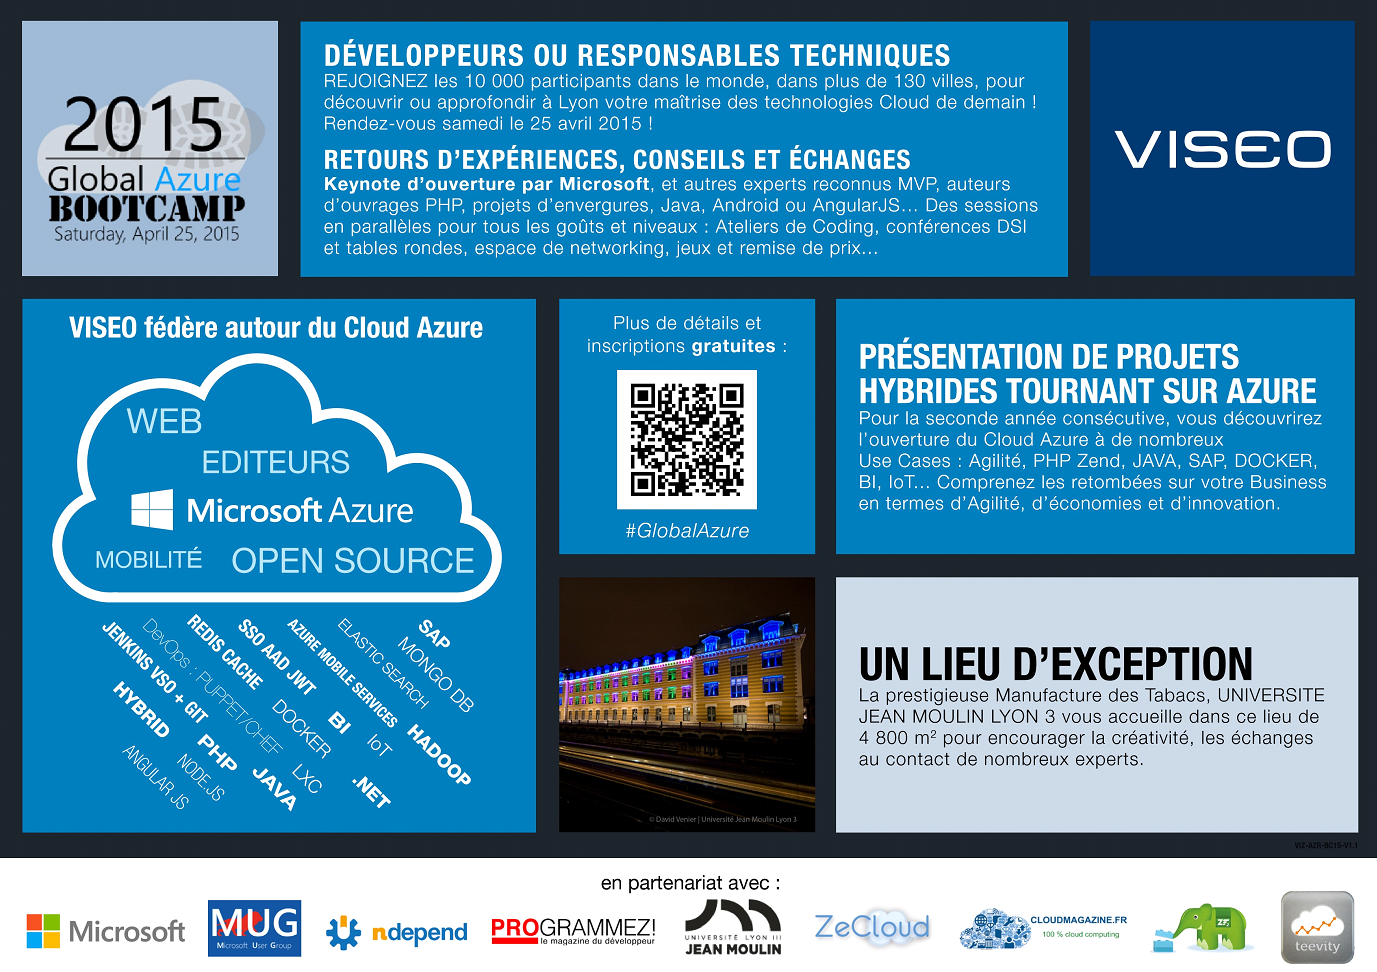 Global Azure Bootcamp organized and sponsored by VISEO